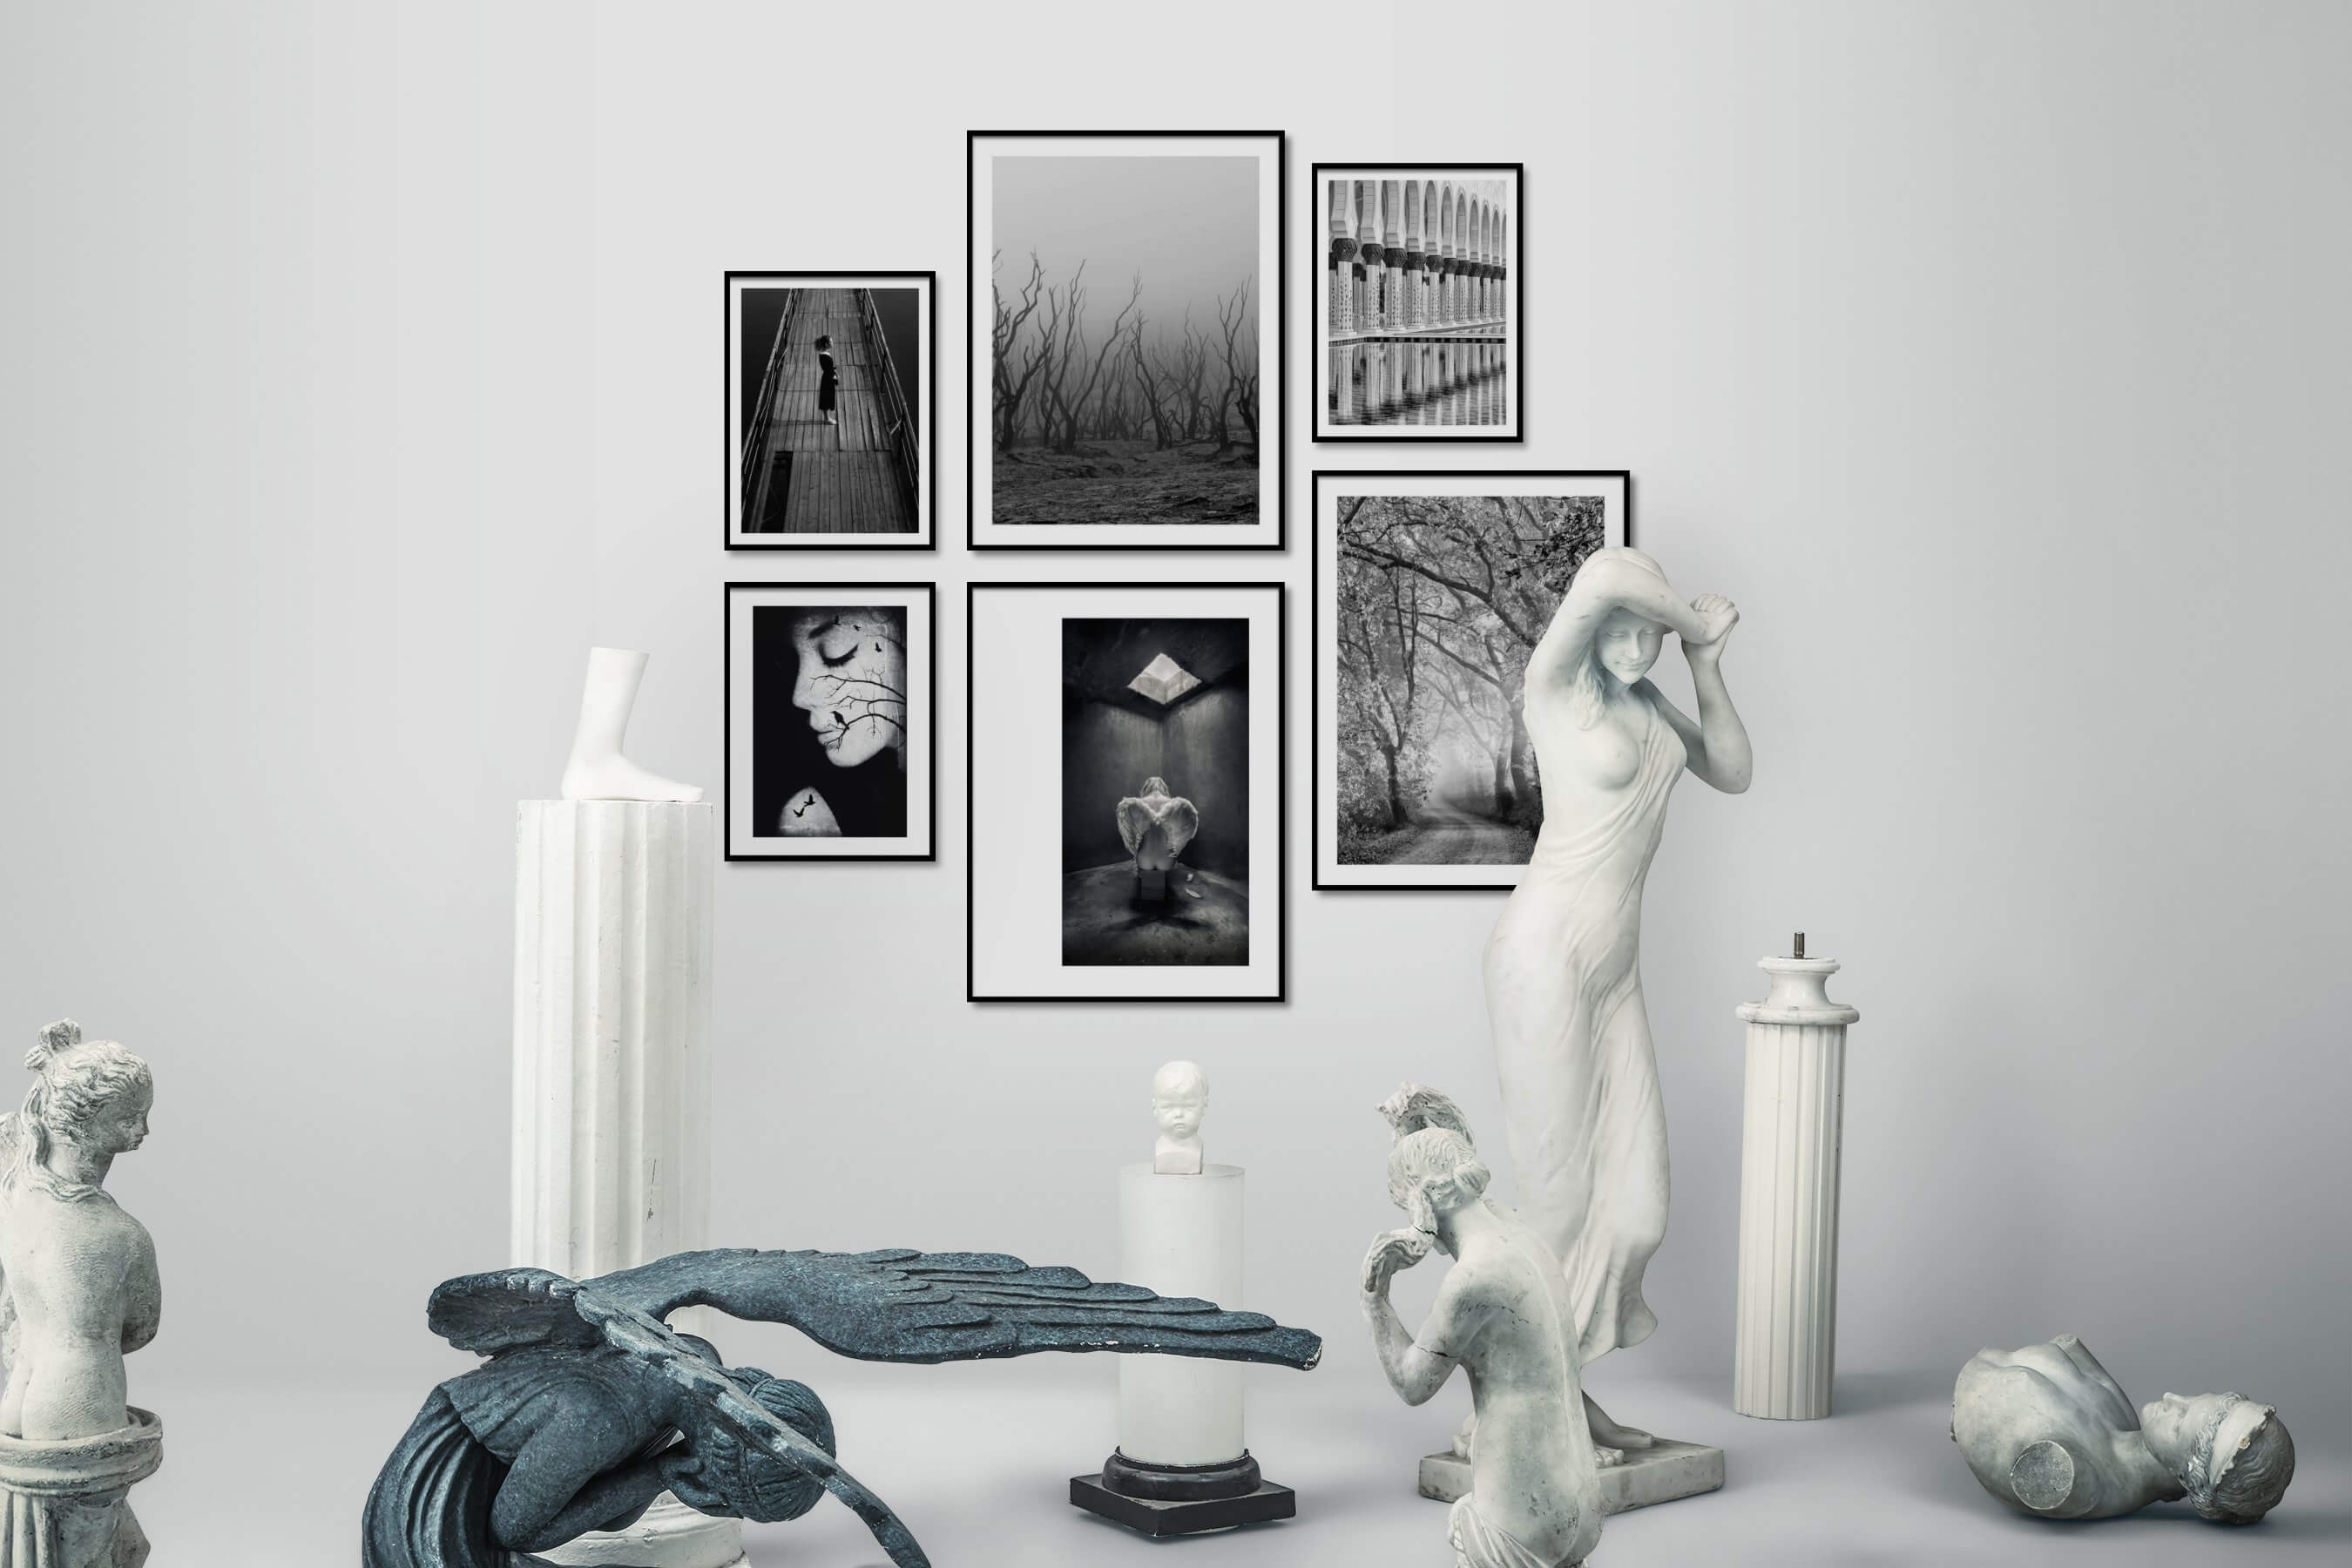 Gallery wall idea with six framed pictures arranged on a wall depicting Fashion & Beauty, Black & White, Mindfulness, Nature, Artsy, and For the Maximalist